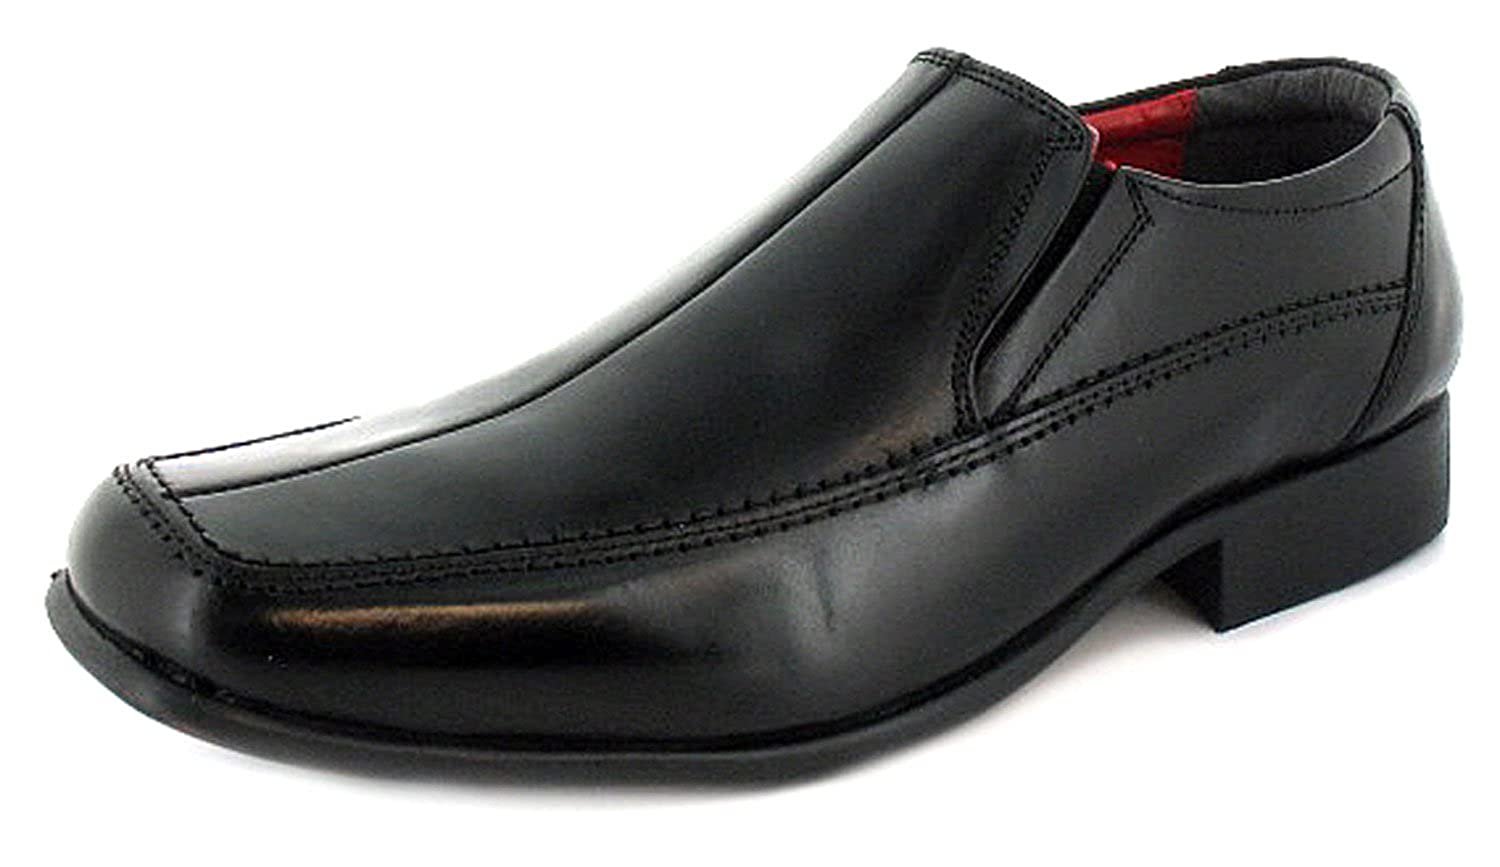 New Mens//Gents Black Slip On Wider Fitting Casual Shoes